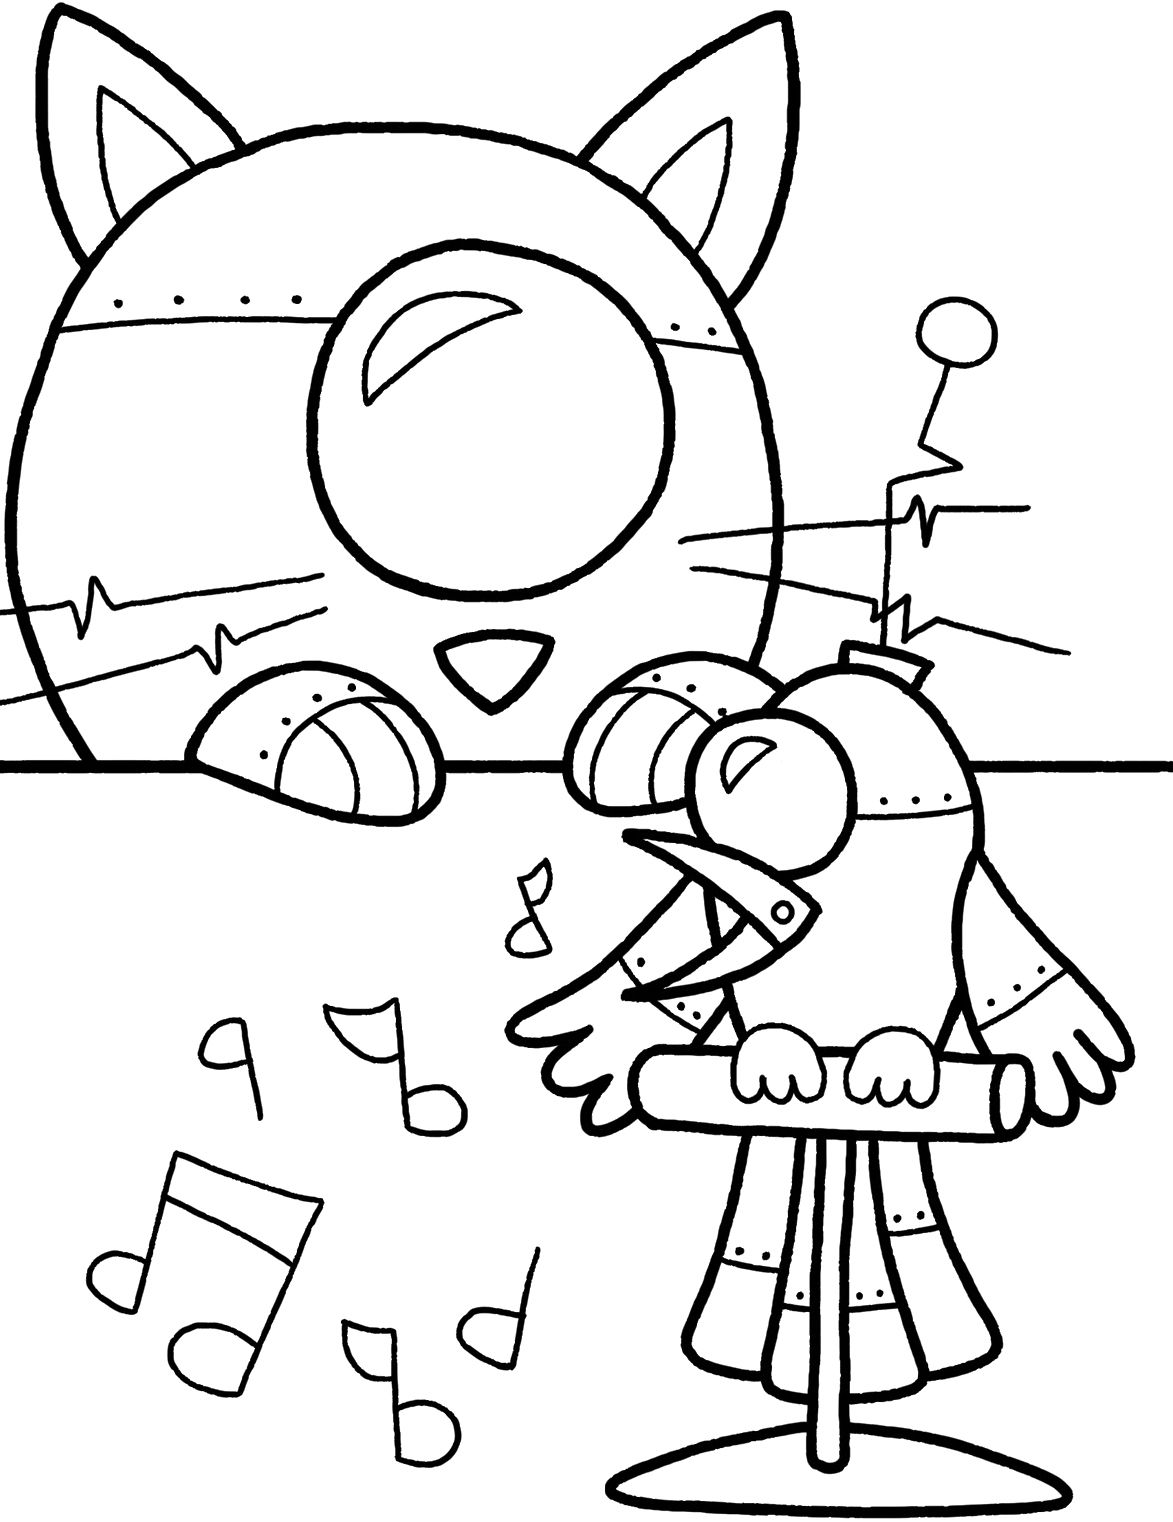 Bird Singing Robot Coloring Pages | Coloring Pages Printables | We ...